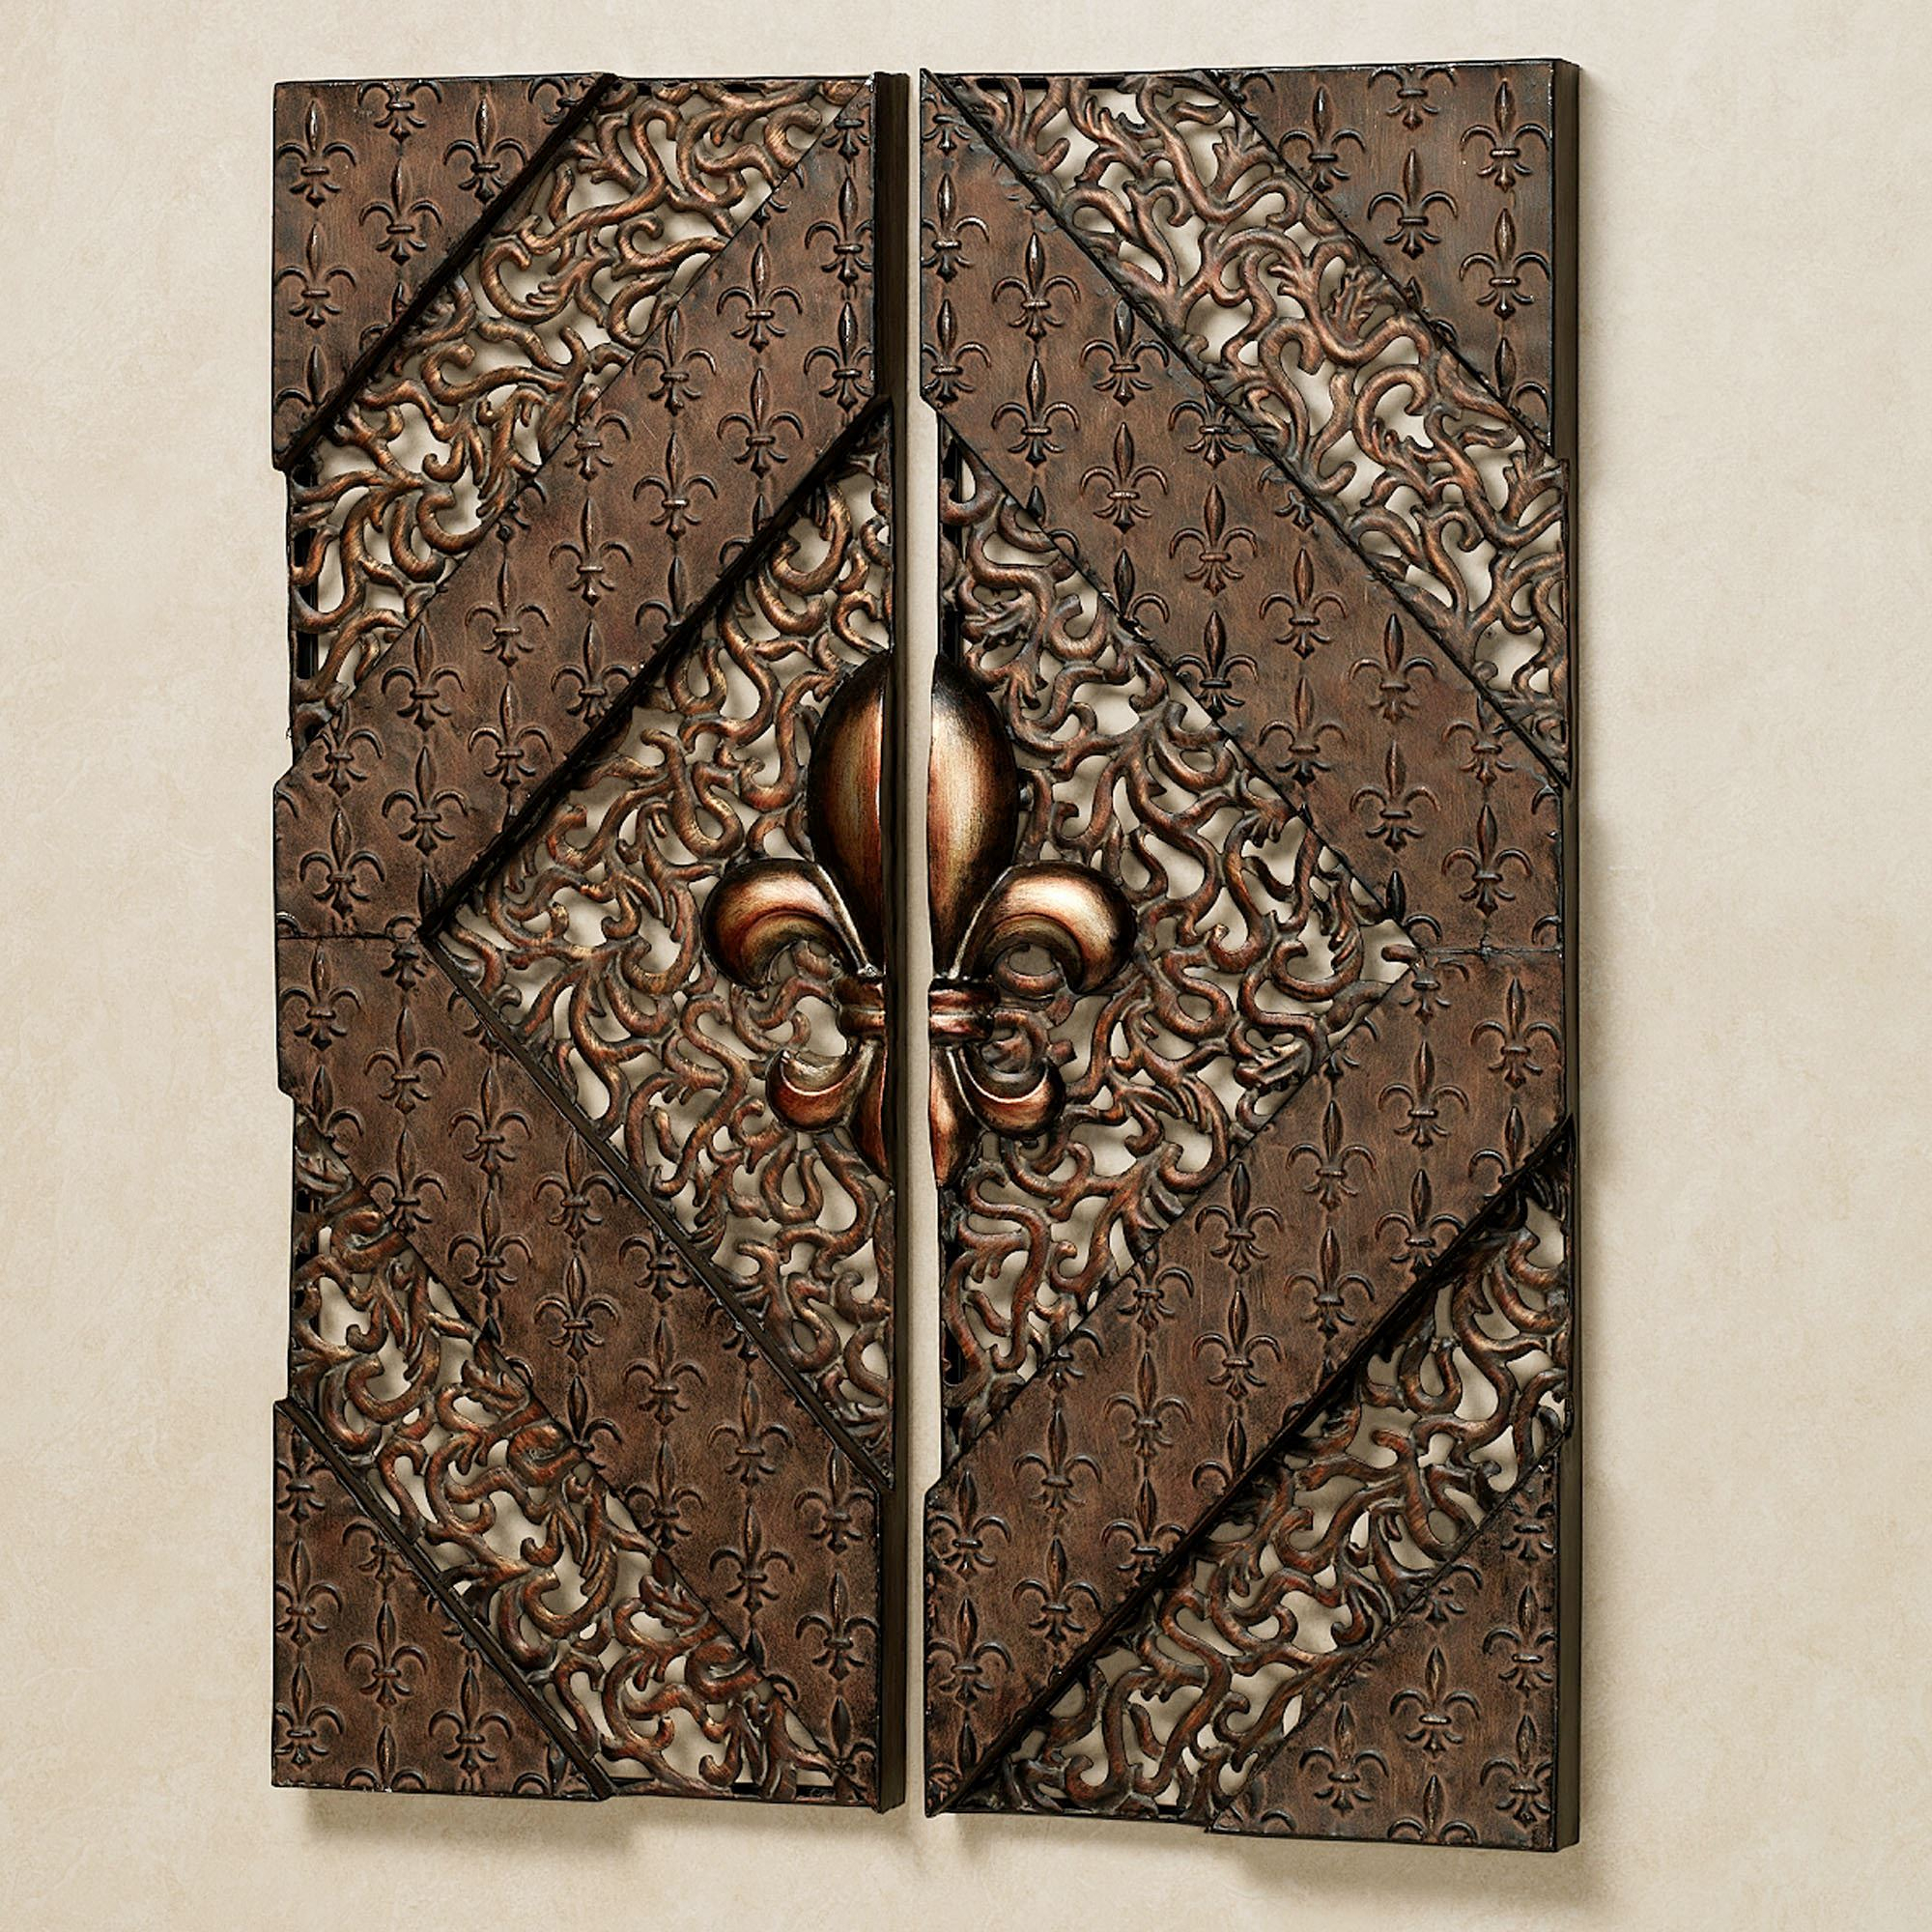 Fleur De Lis Metal Wall Panel Set With Well Known 2 Piece Metal Wall Decor Sets By Fleur De Lis Living (View 3 of 20)